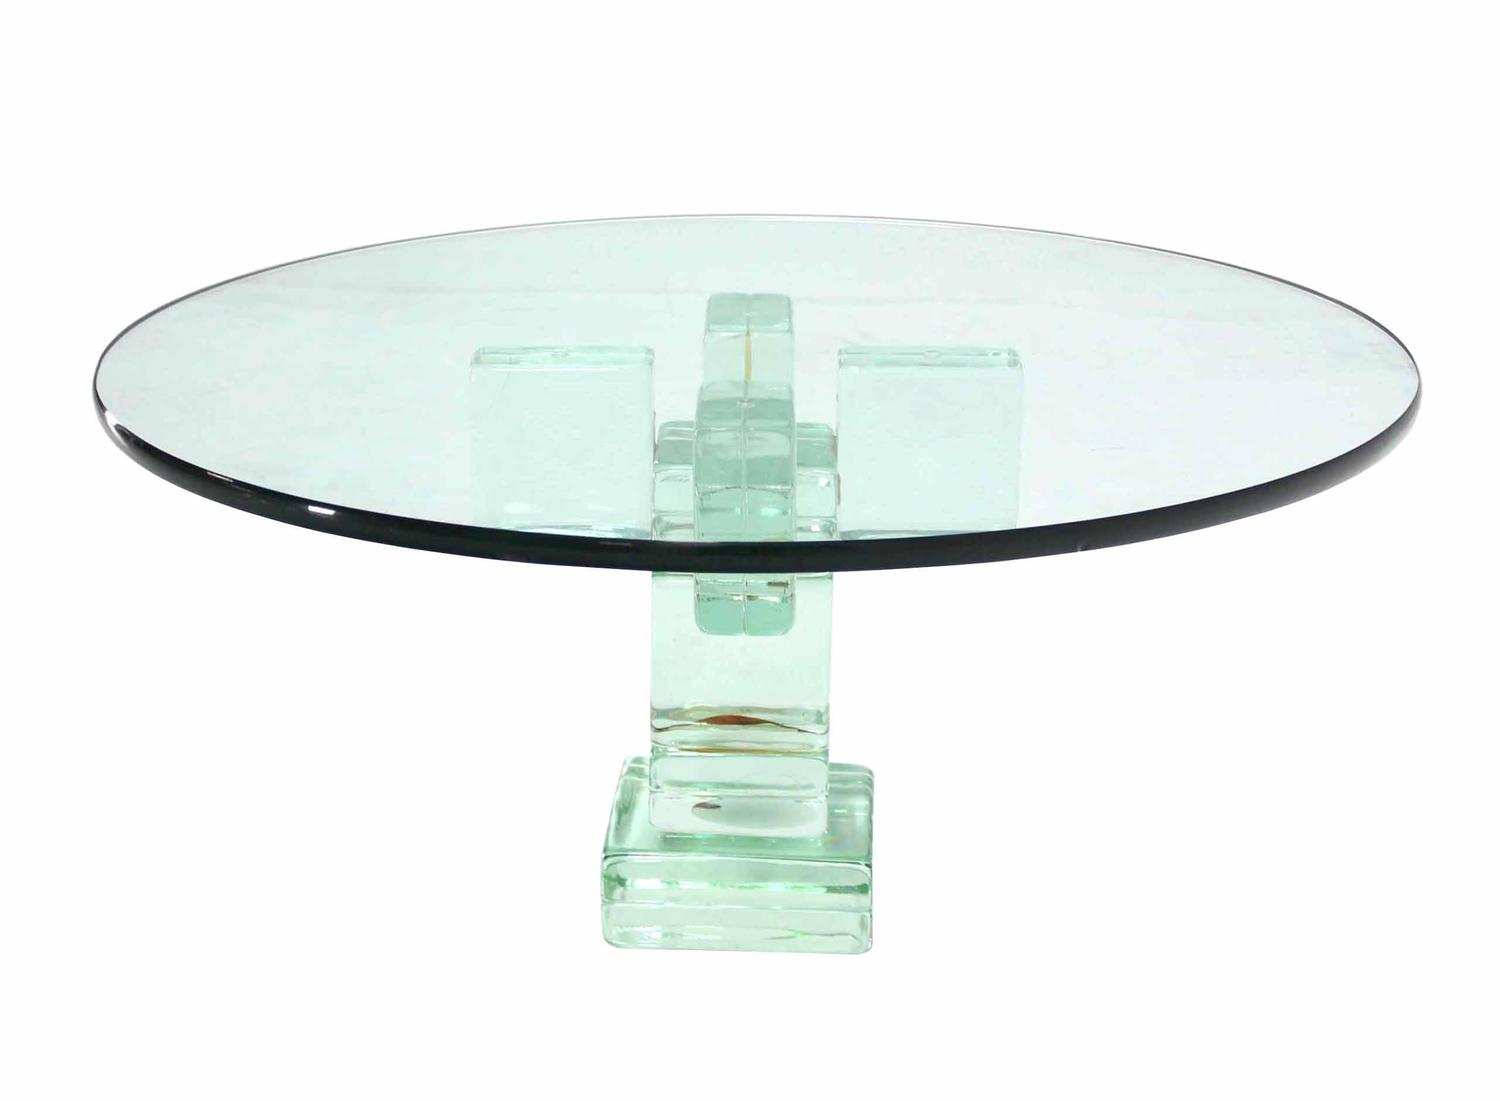 Iridescent glass block base round coffee table for sale at for Round glass coffee tables for sale